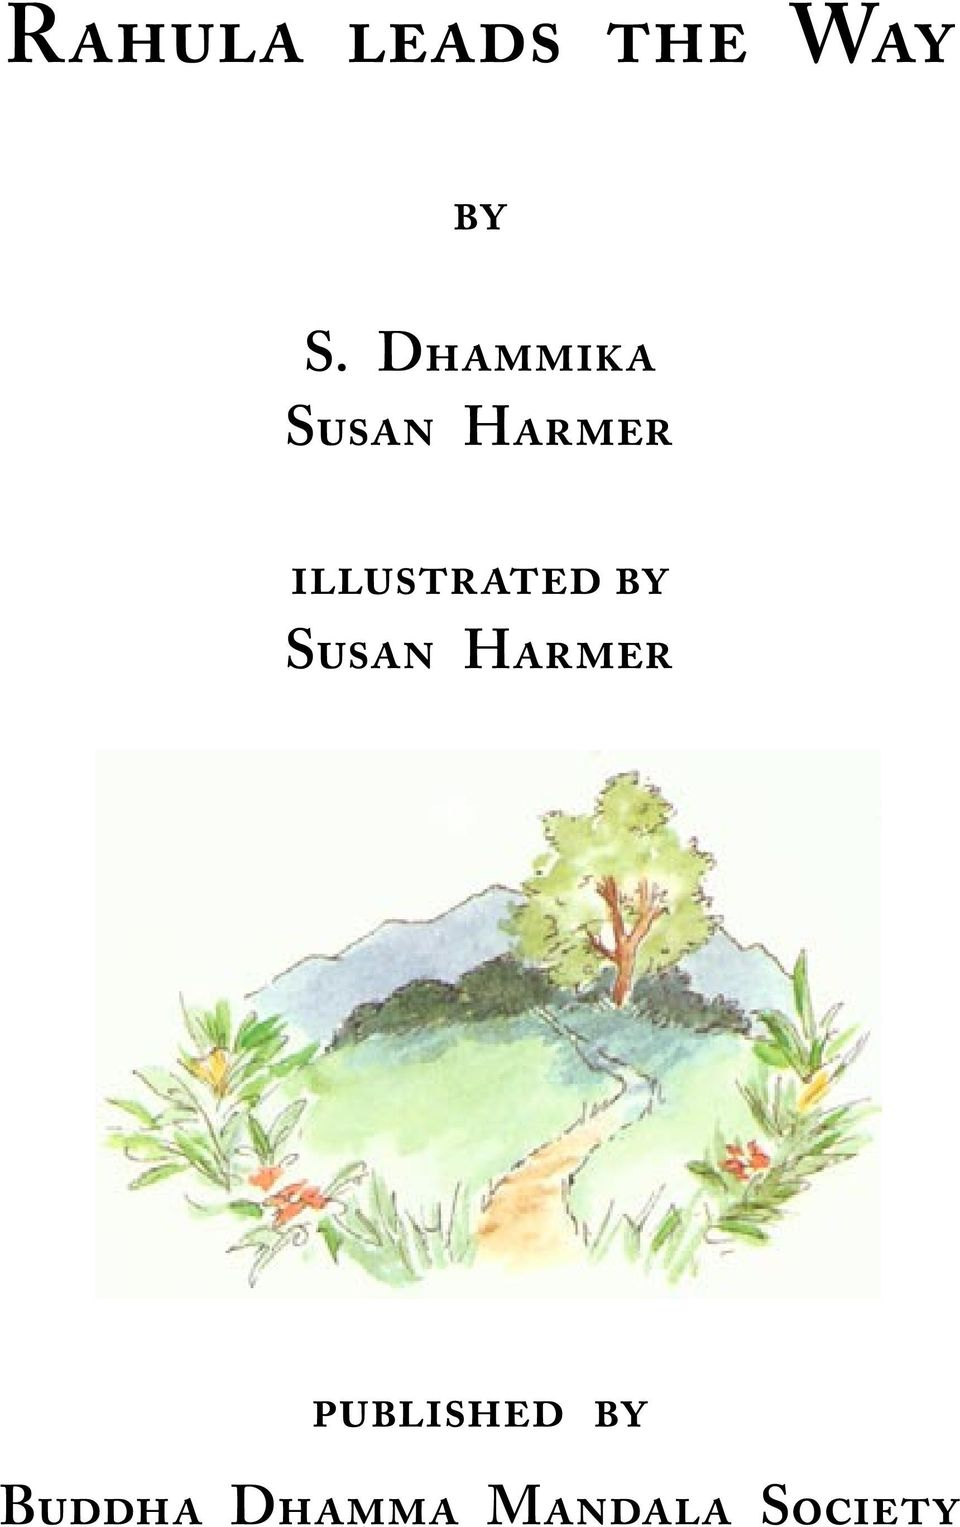 ILLUSTRATED BY SUSAN HARMER